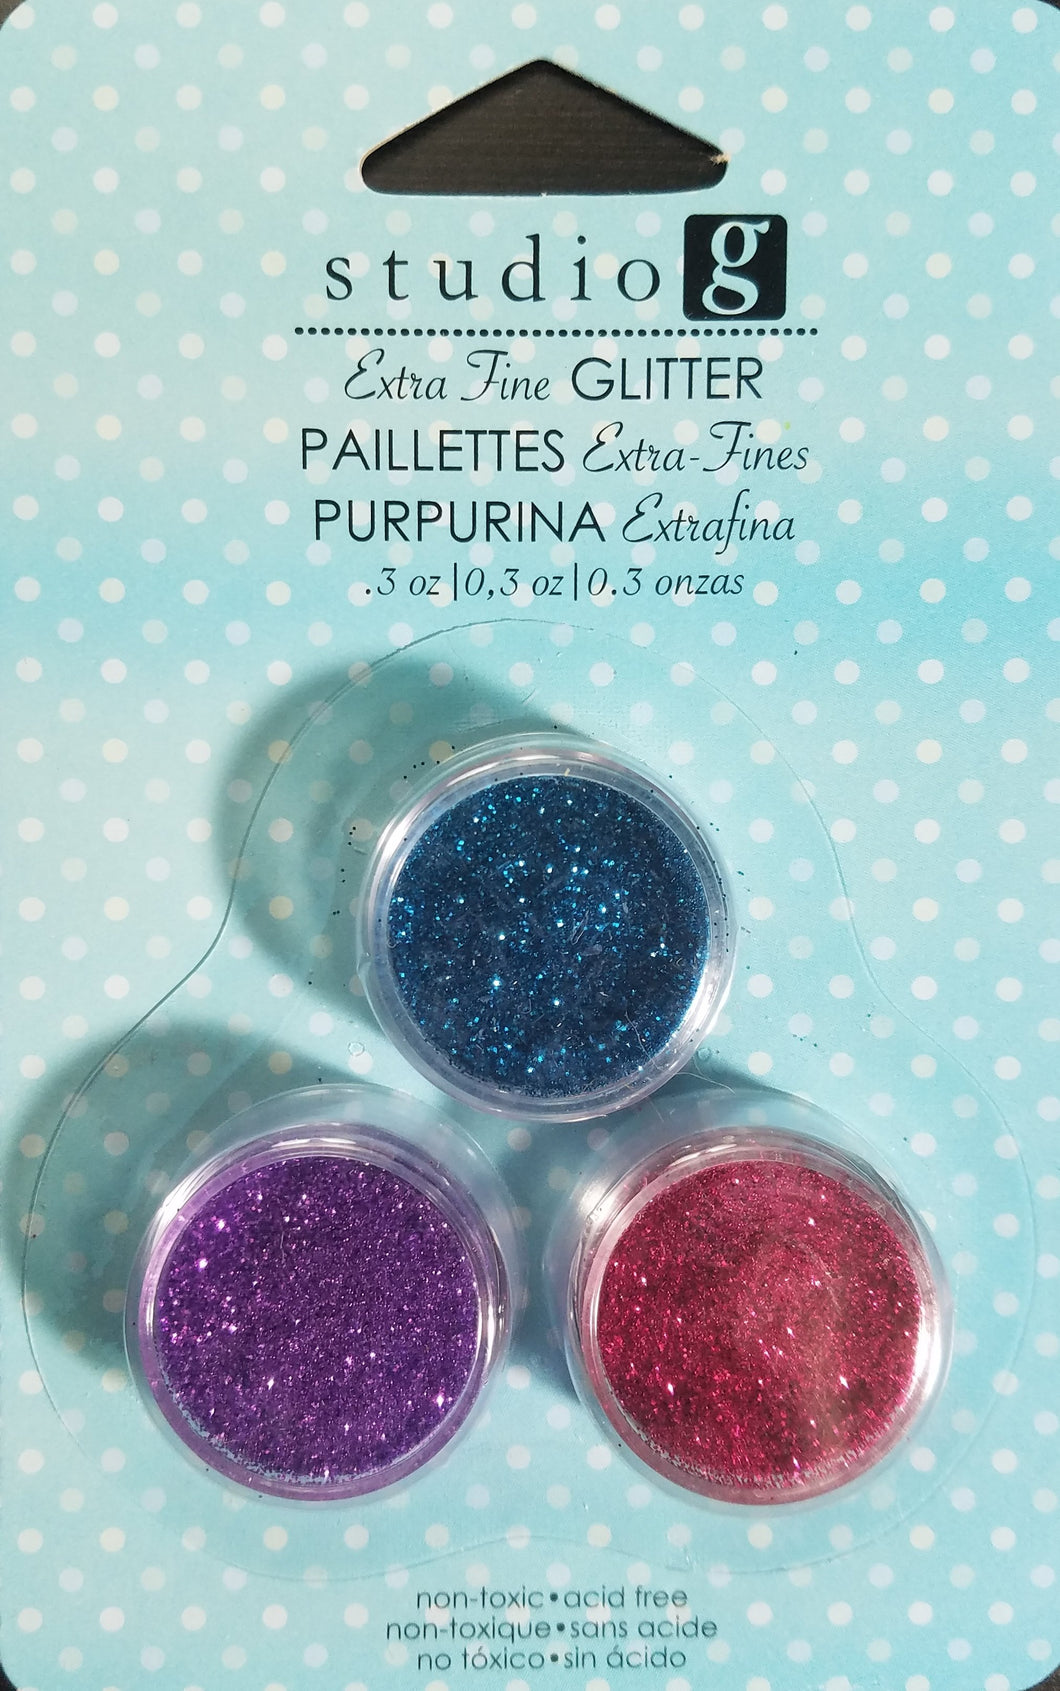 Studio G Glitter Extra Fine 3 pack Blue, Pink and Purple